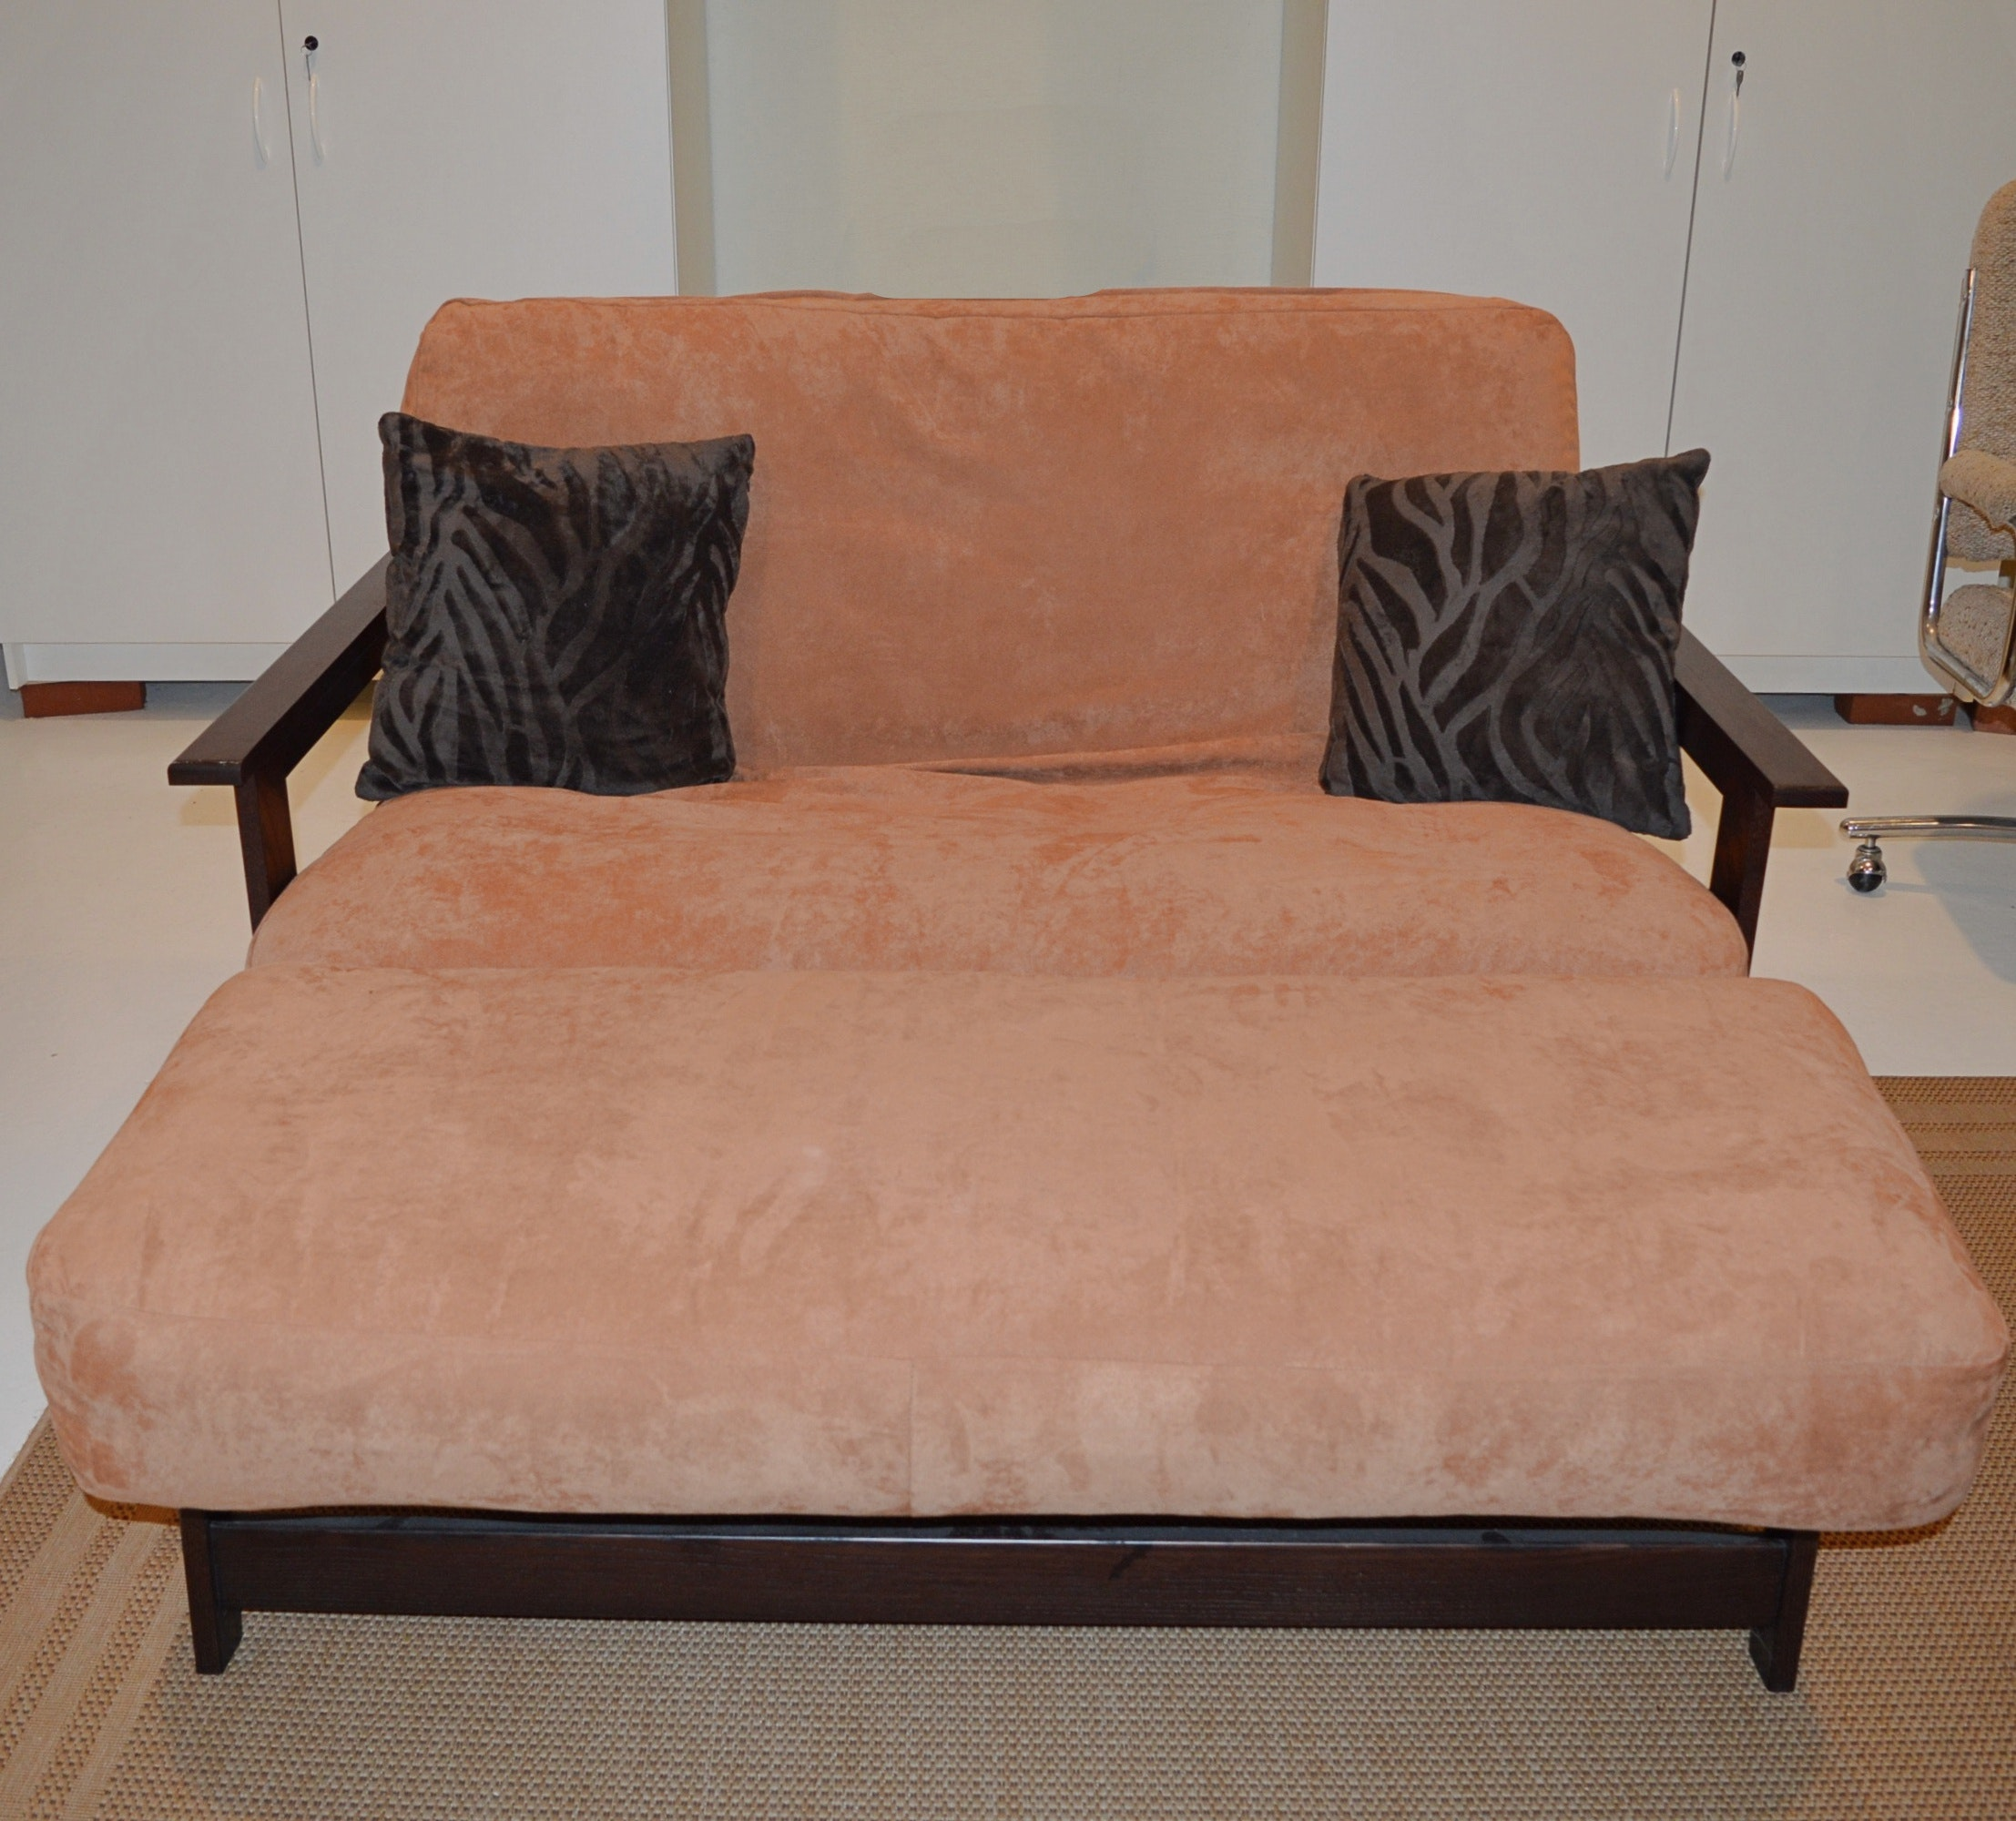 Futon Sofa With Thick Ultra Suede Upholstered Cushions ...